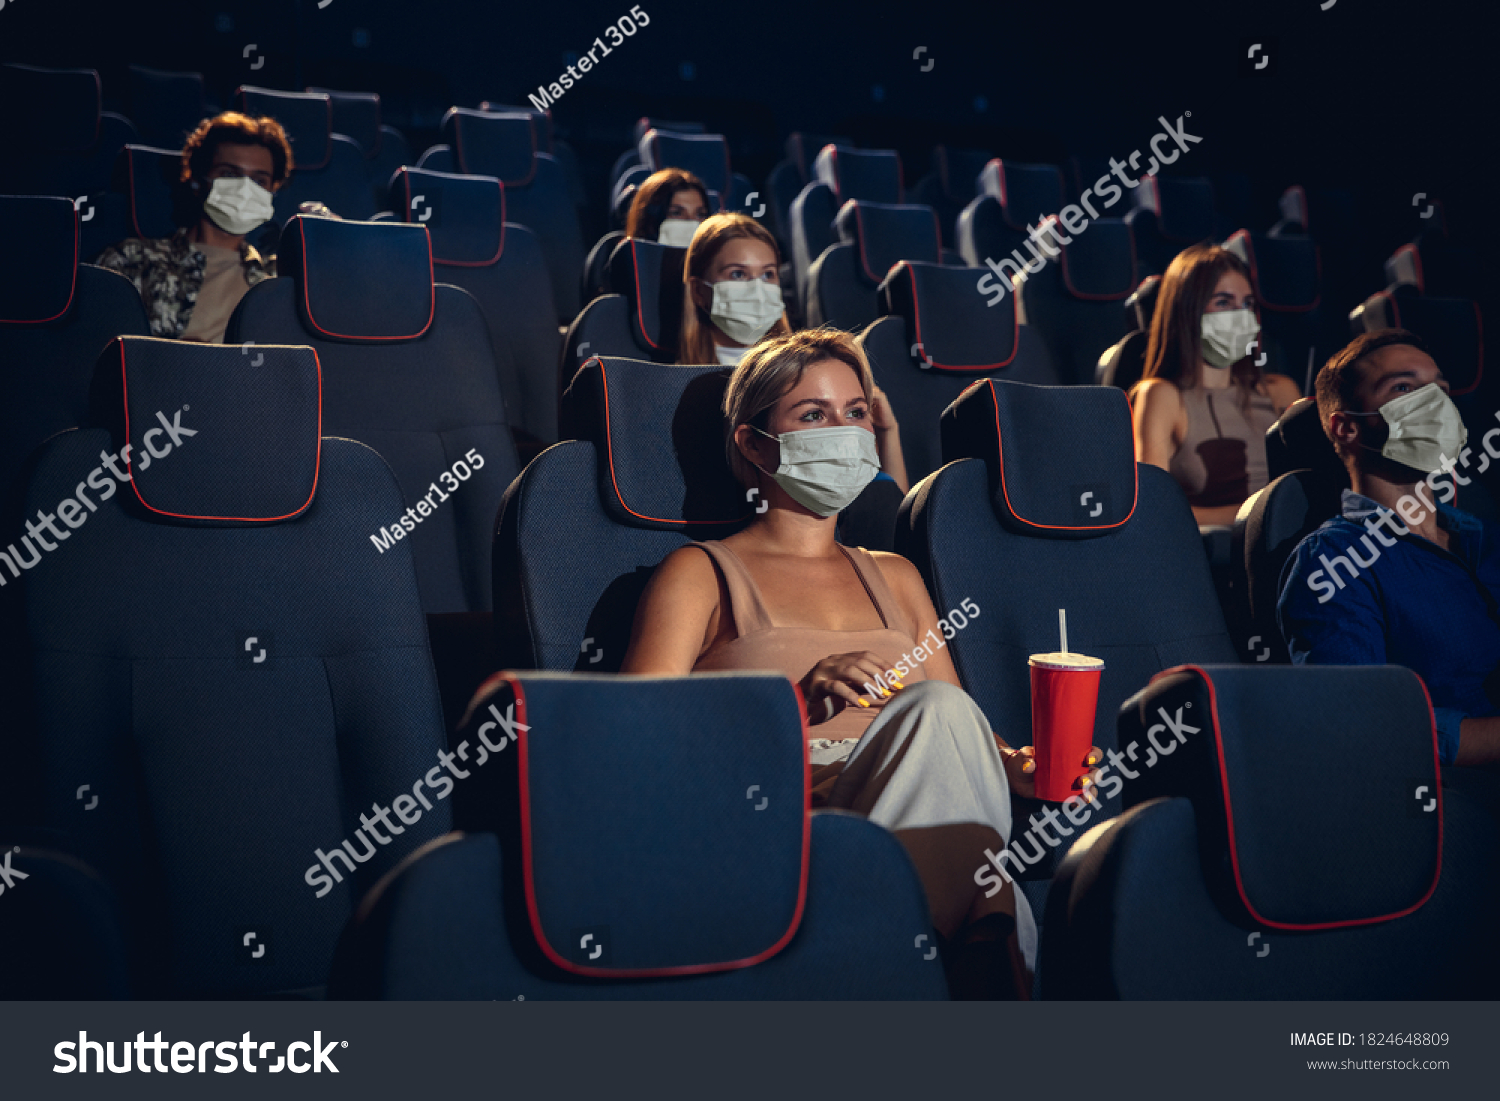 Cinema in quarantine. Coronavirus pandemic safety rules, social distance during movie watching. Men, women in protective face mask sitting in a rows of auditorium. Leisure time, youth culture concept. #1824648809